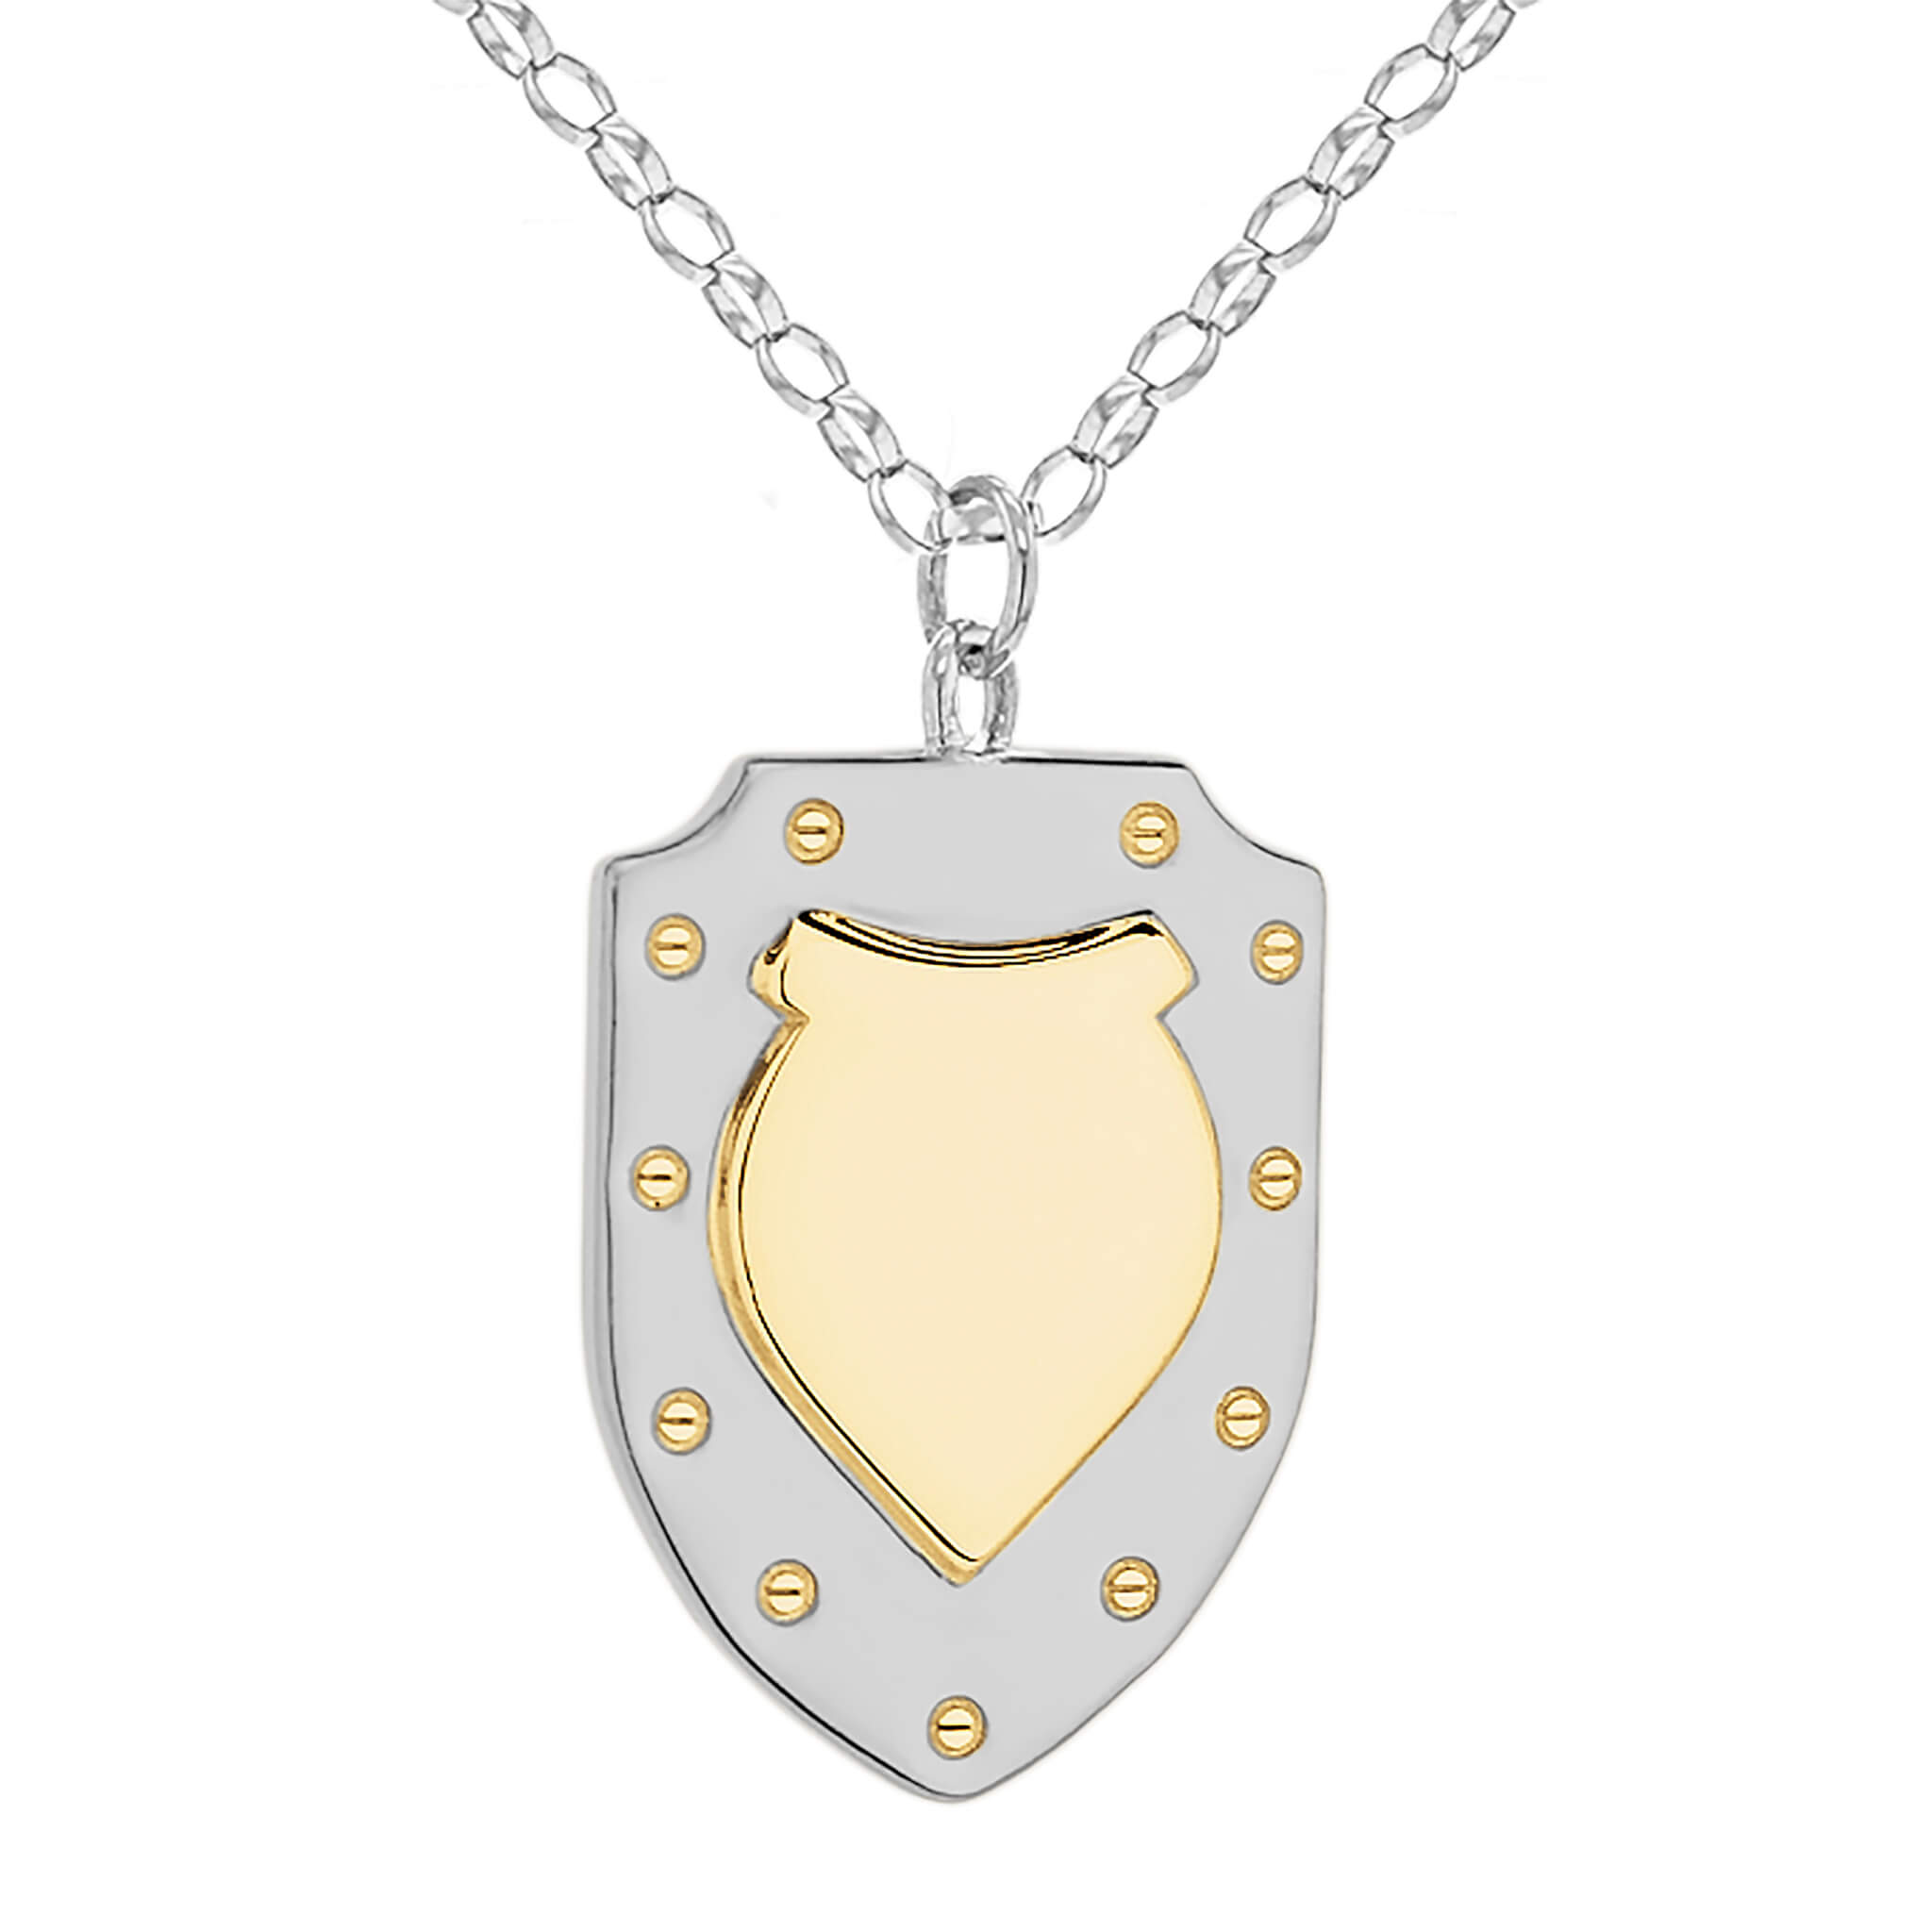 2 TONE SILVER/GOLD SHIELD – LARGE